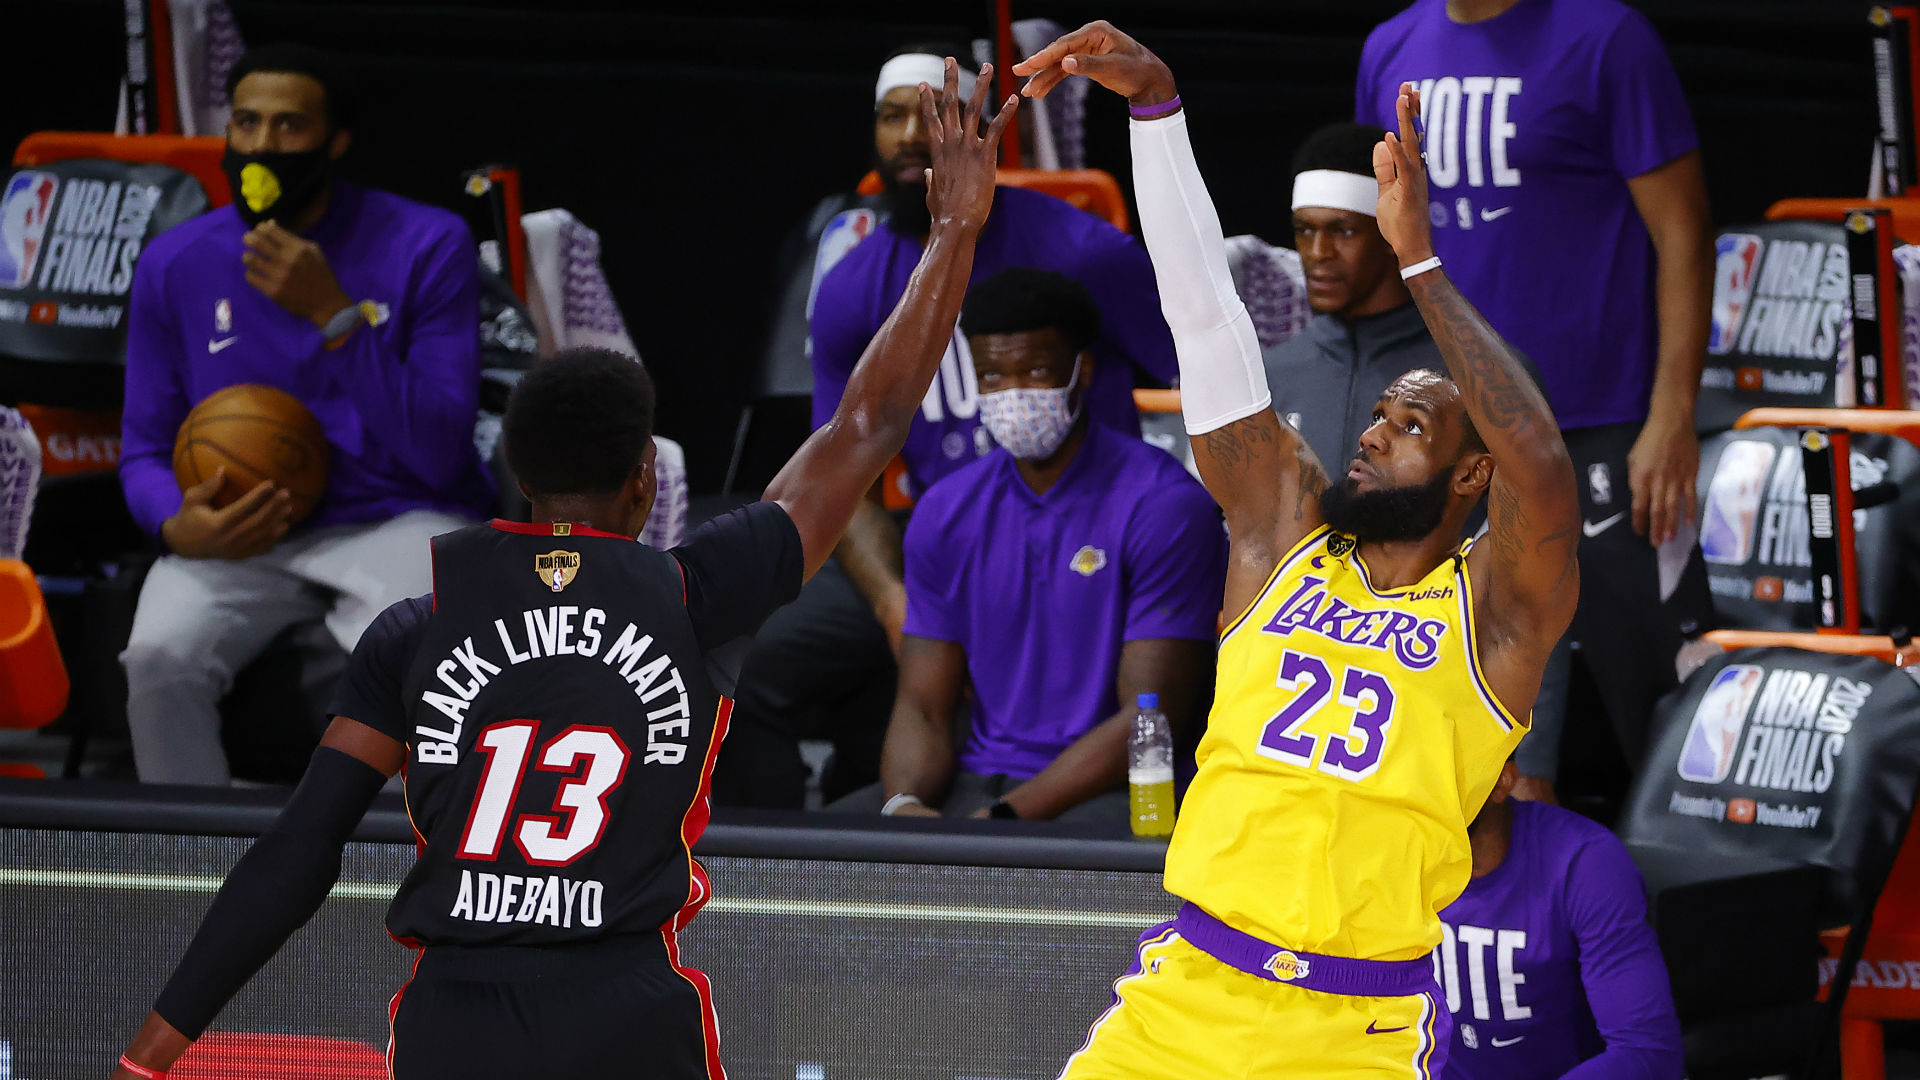 Lakers Vs Heat Score Results Los Angeles Cruises To Game 1 Win As Injuries Ravage Miami Sporting News